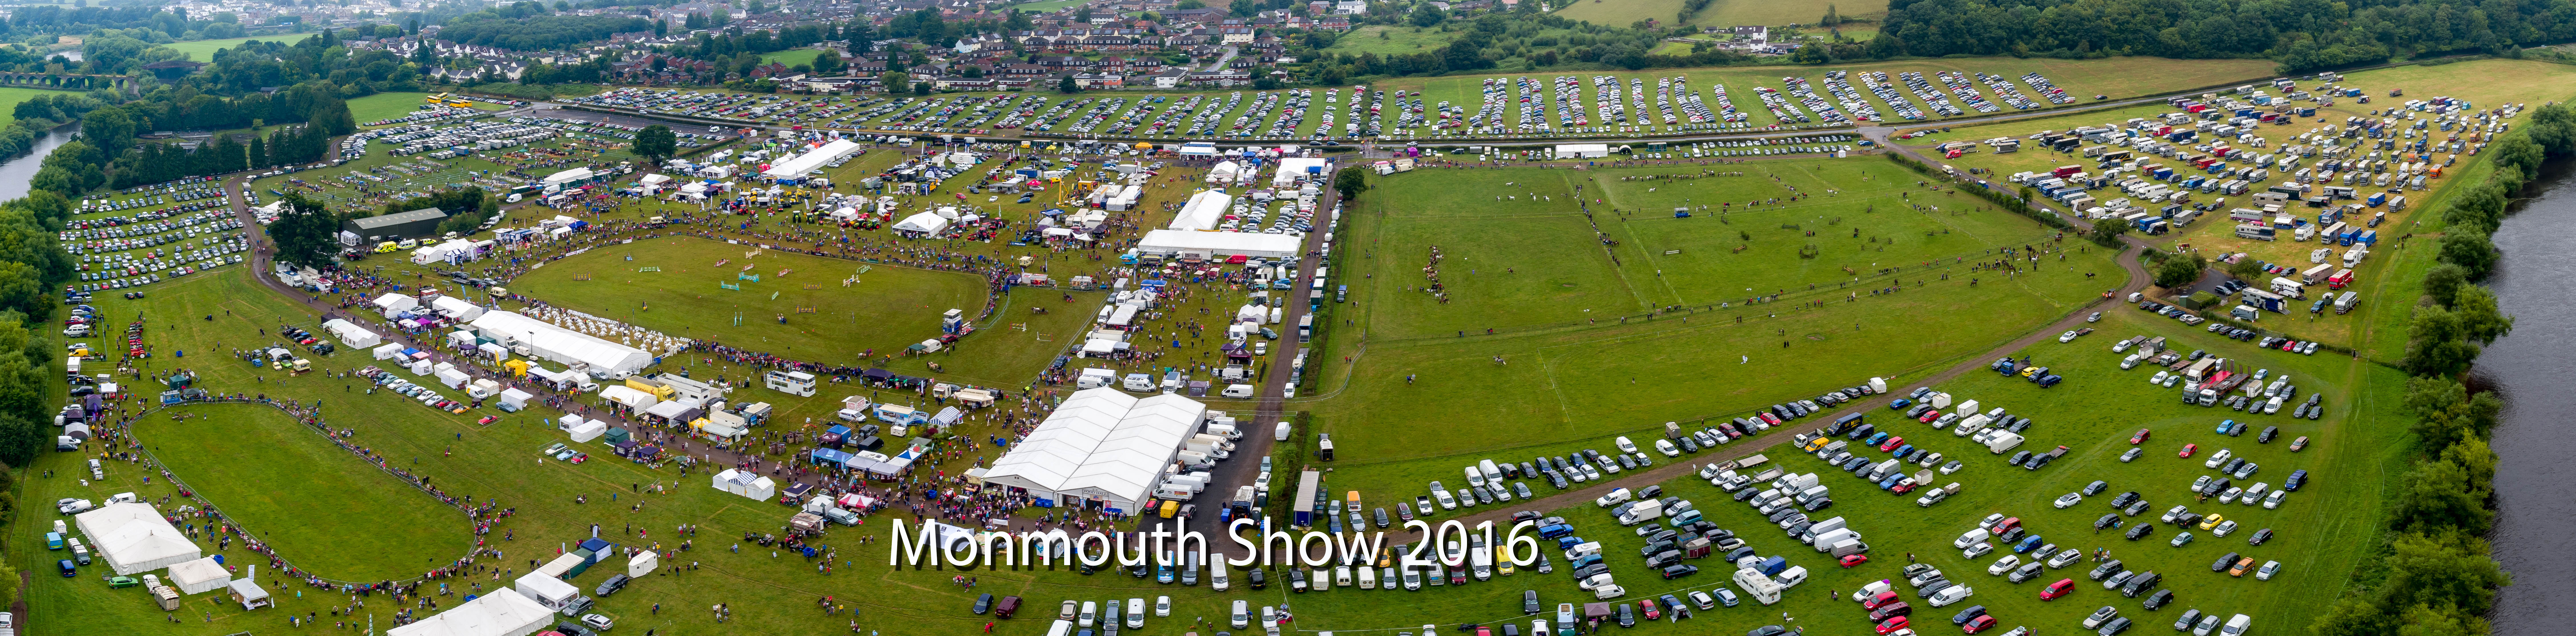 Monmouth show 2016